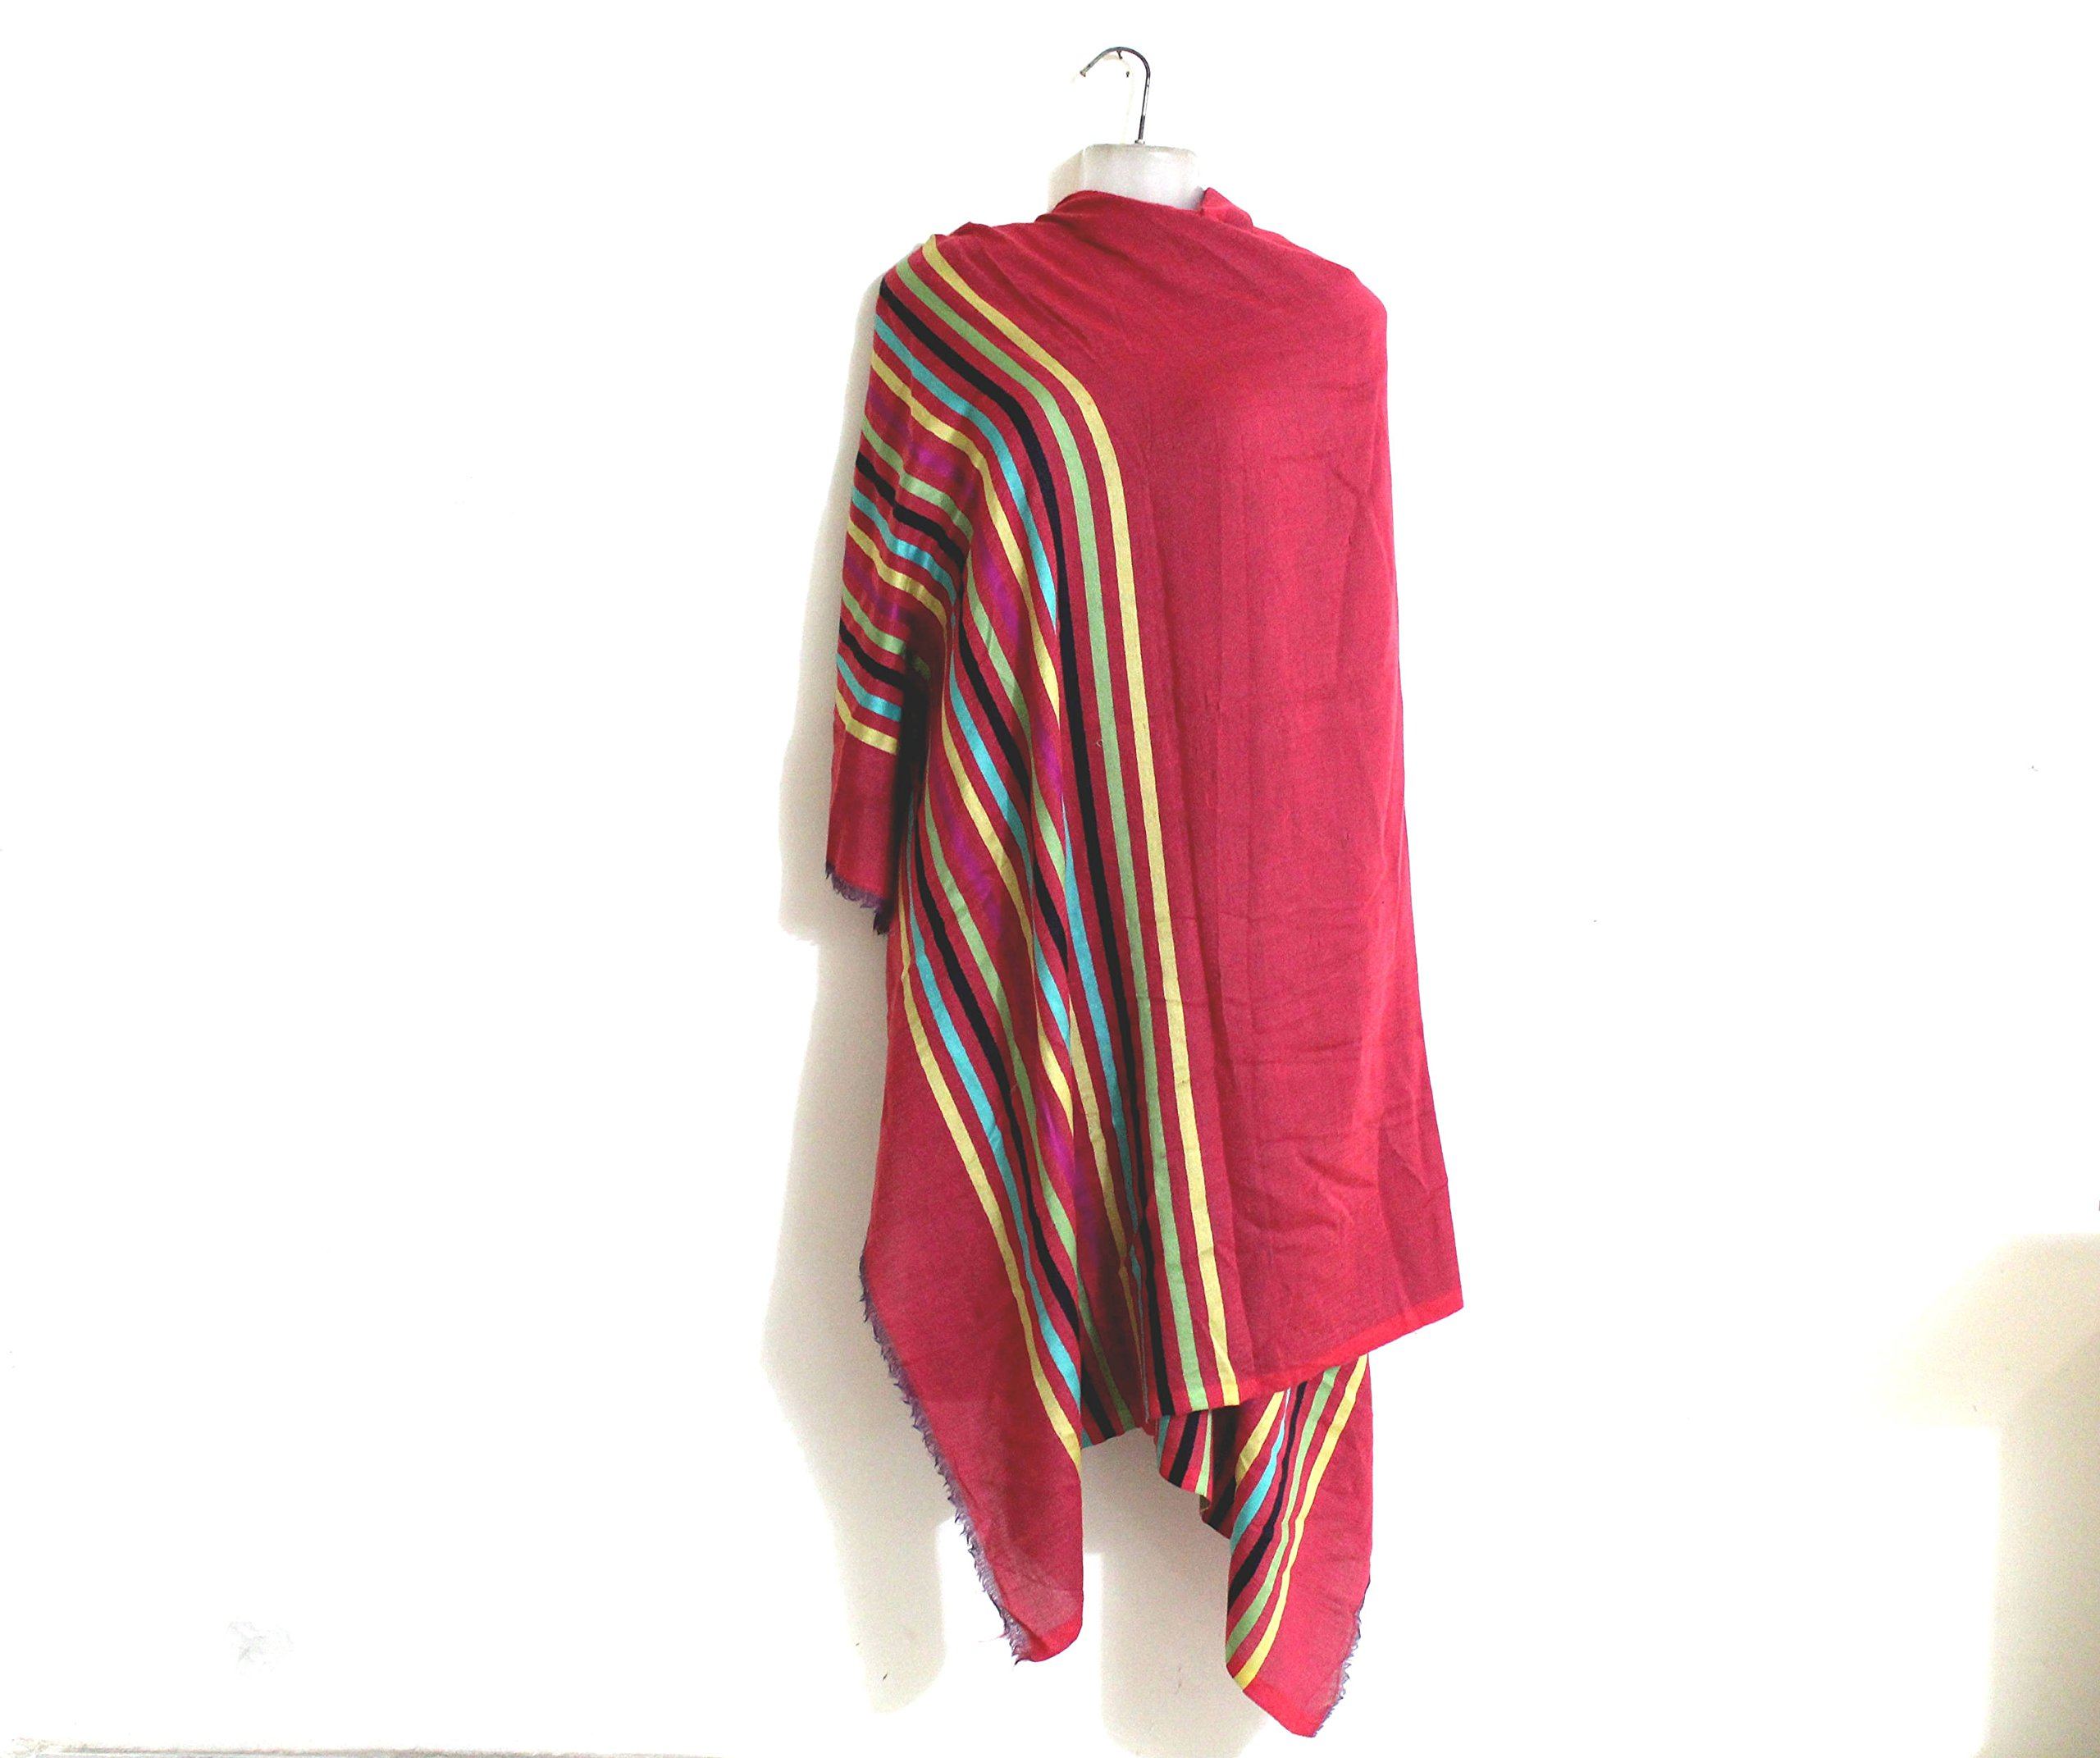 Red Pashmina scarves Colorful bridal wrap wedding shawl cashmere scarf bridesmaid gift -Size 76''x 27'' IDSC10 by iDukaancrafts (Image #3)